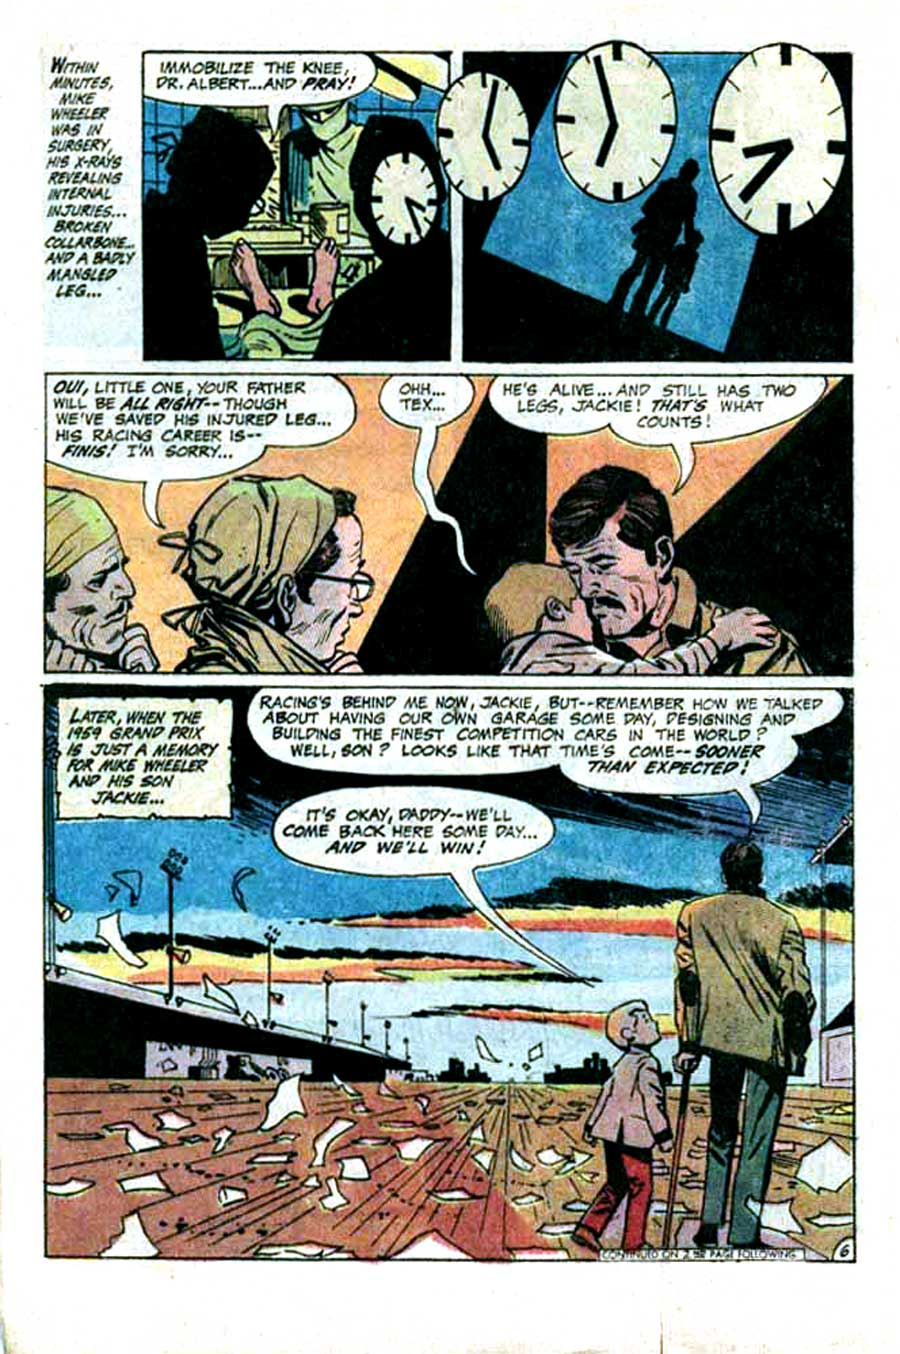 Hot Wheels v1 #1 dc 1970s bronze age comic book page art by Alex Toth